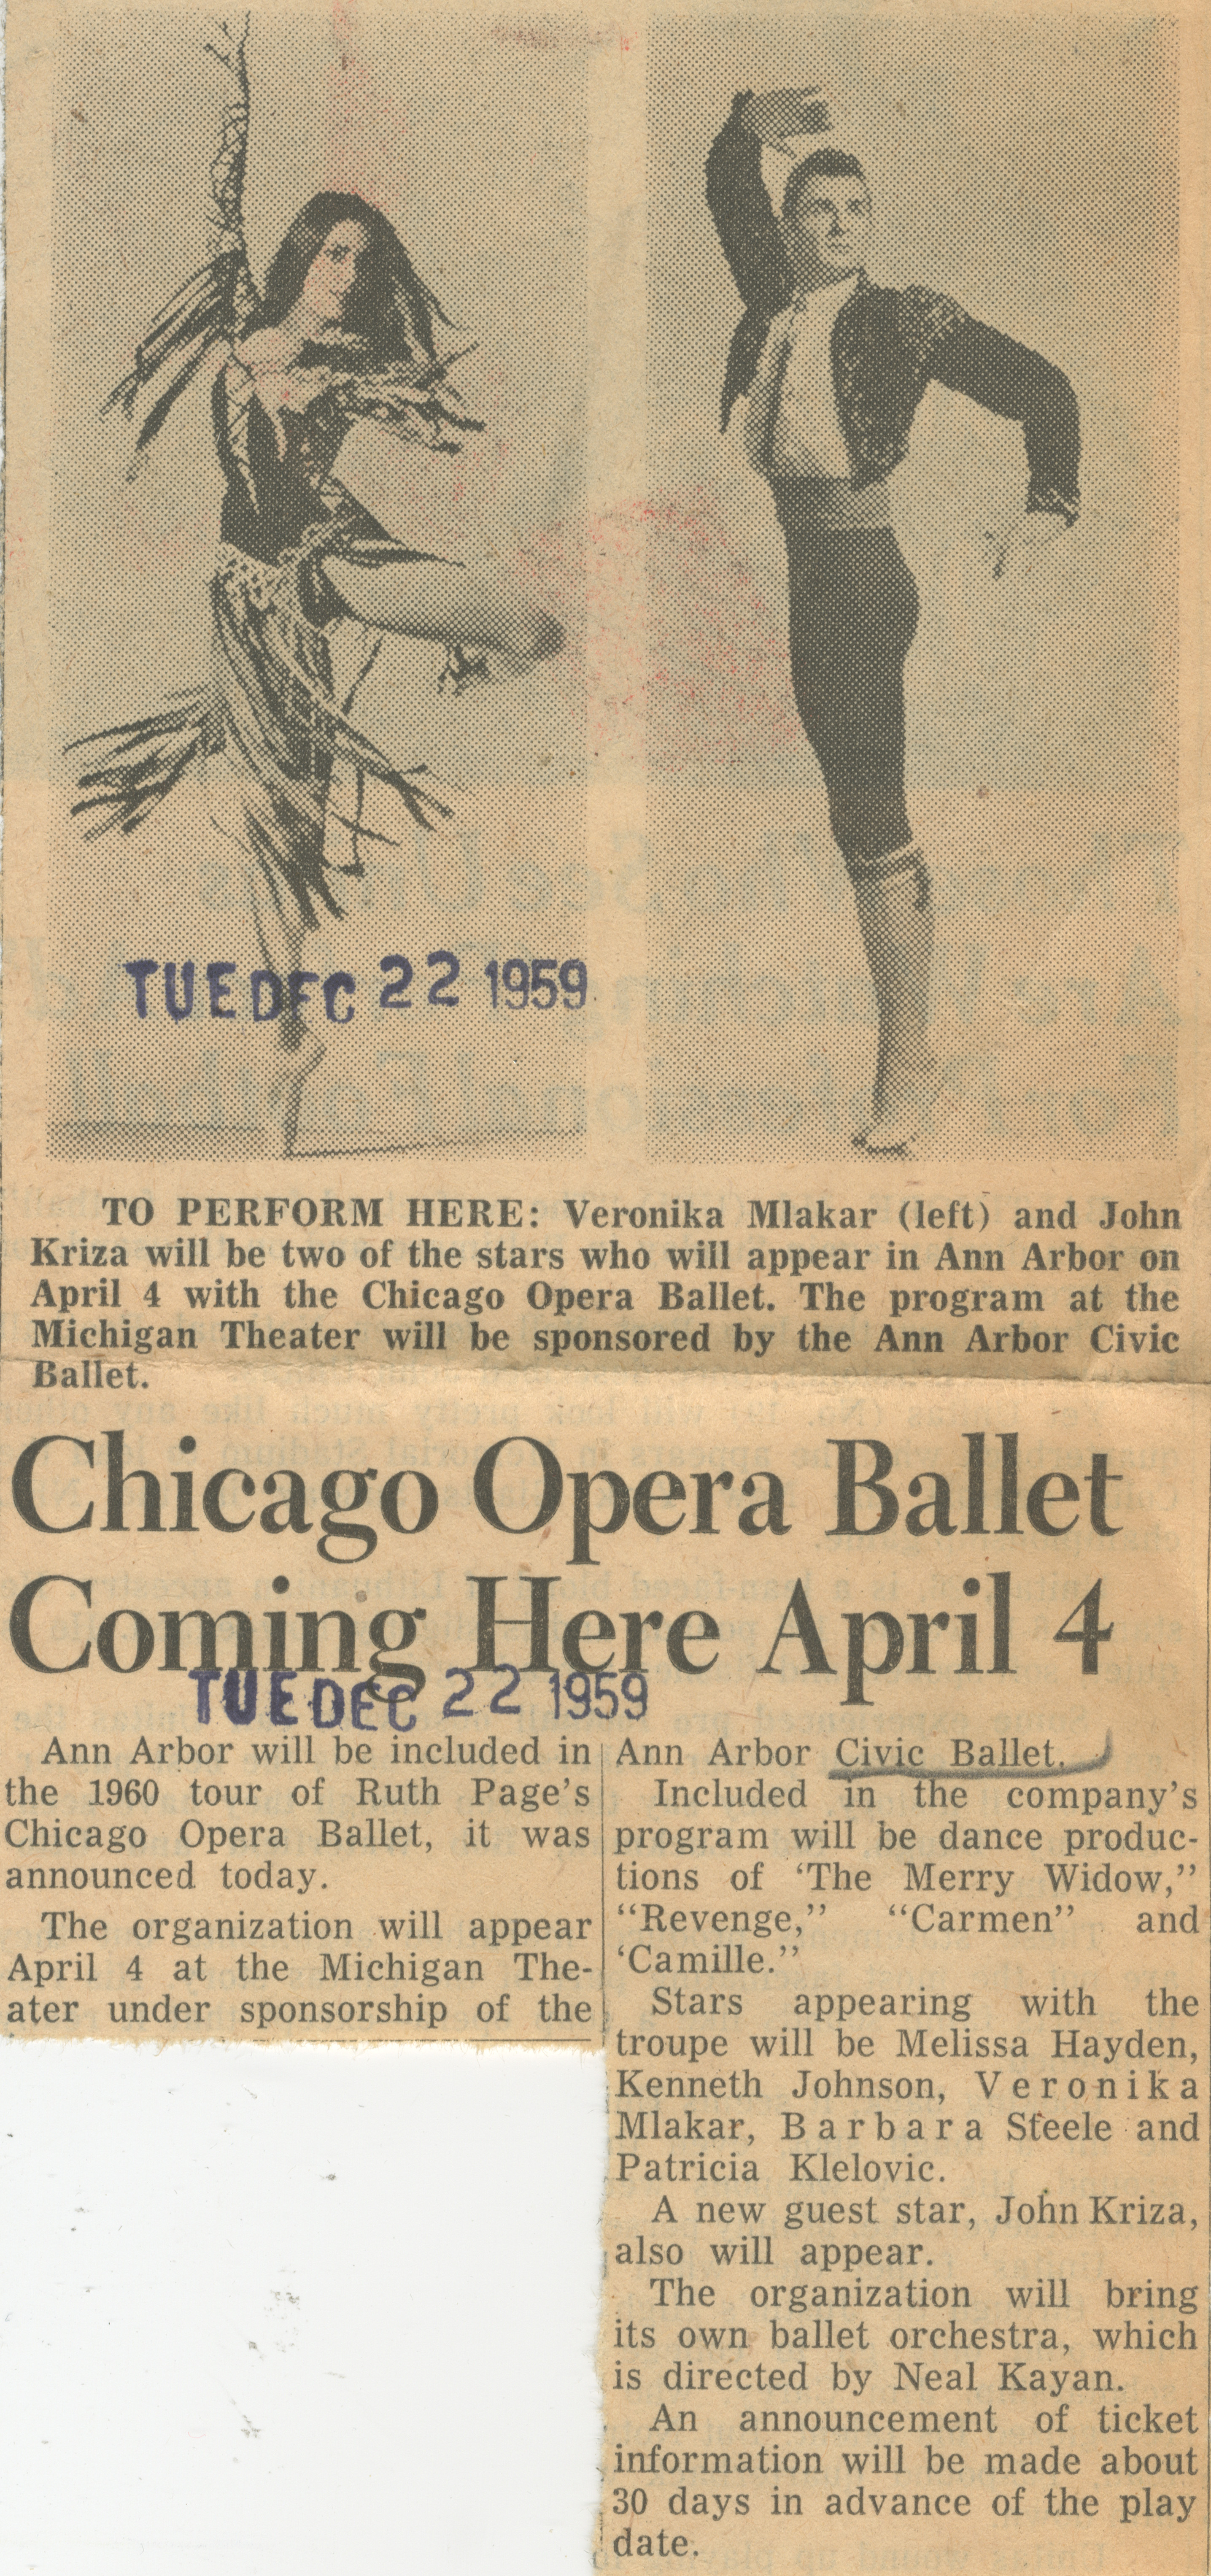 Chicago Opera Ballet Coming Here April 4 image